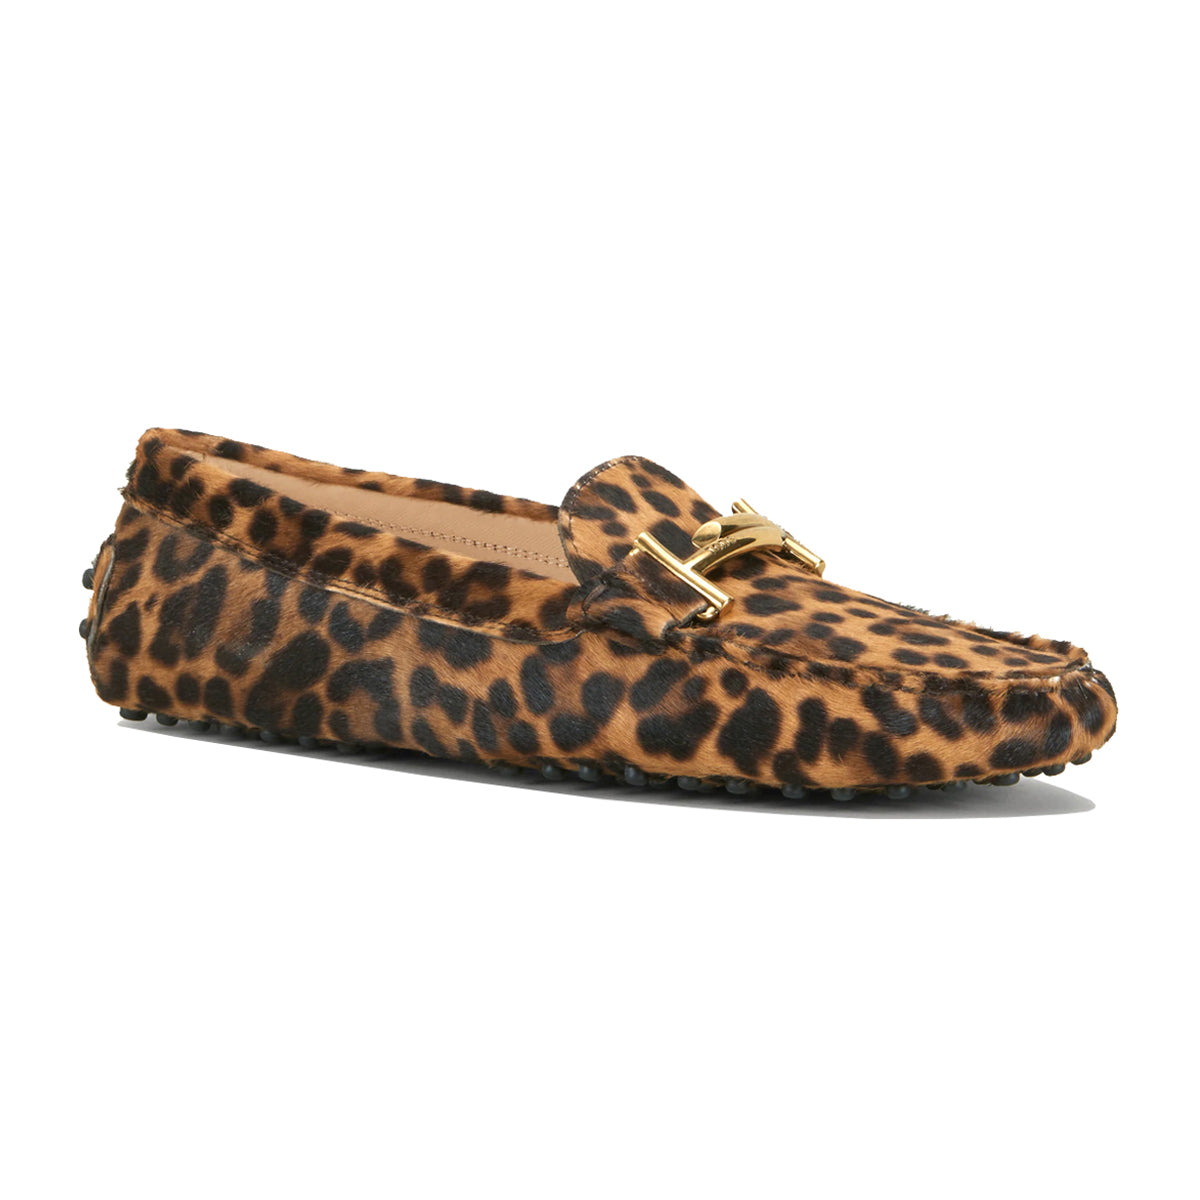 Ponyskin-Effect Double T Gommino Loafers